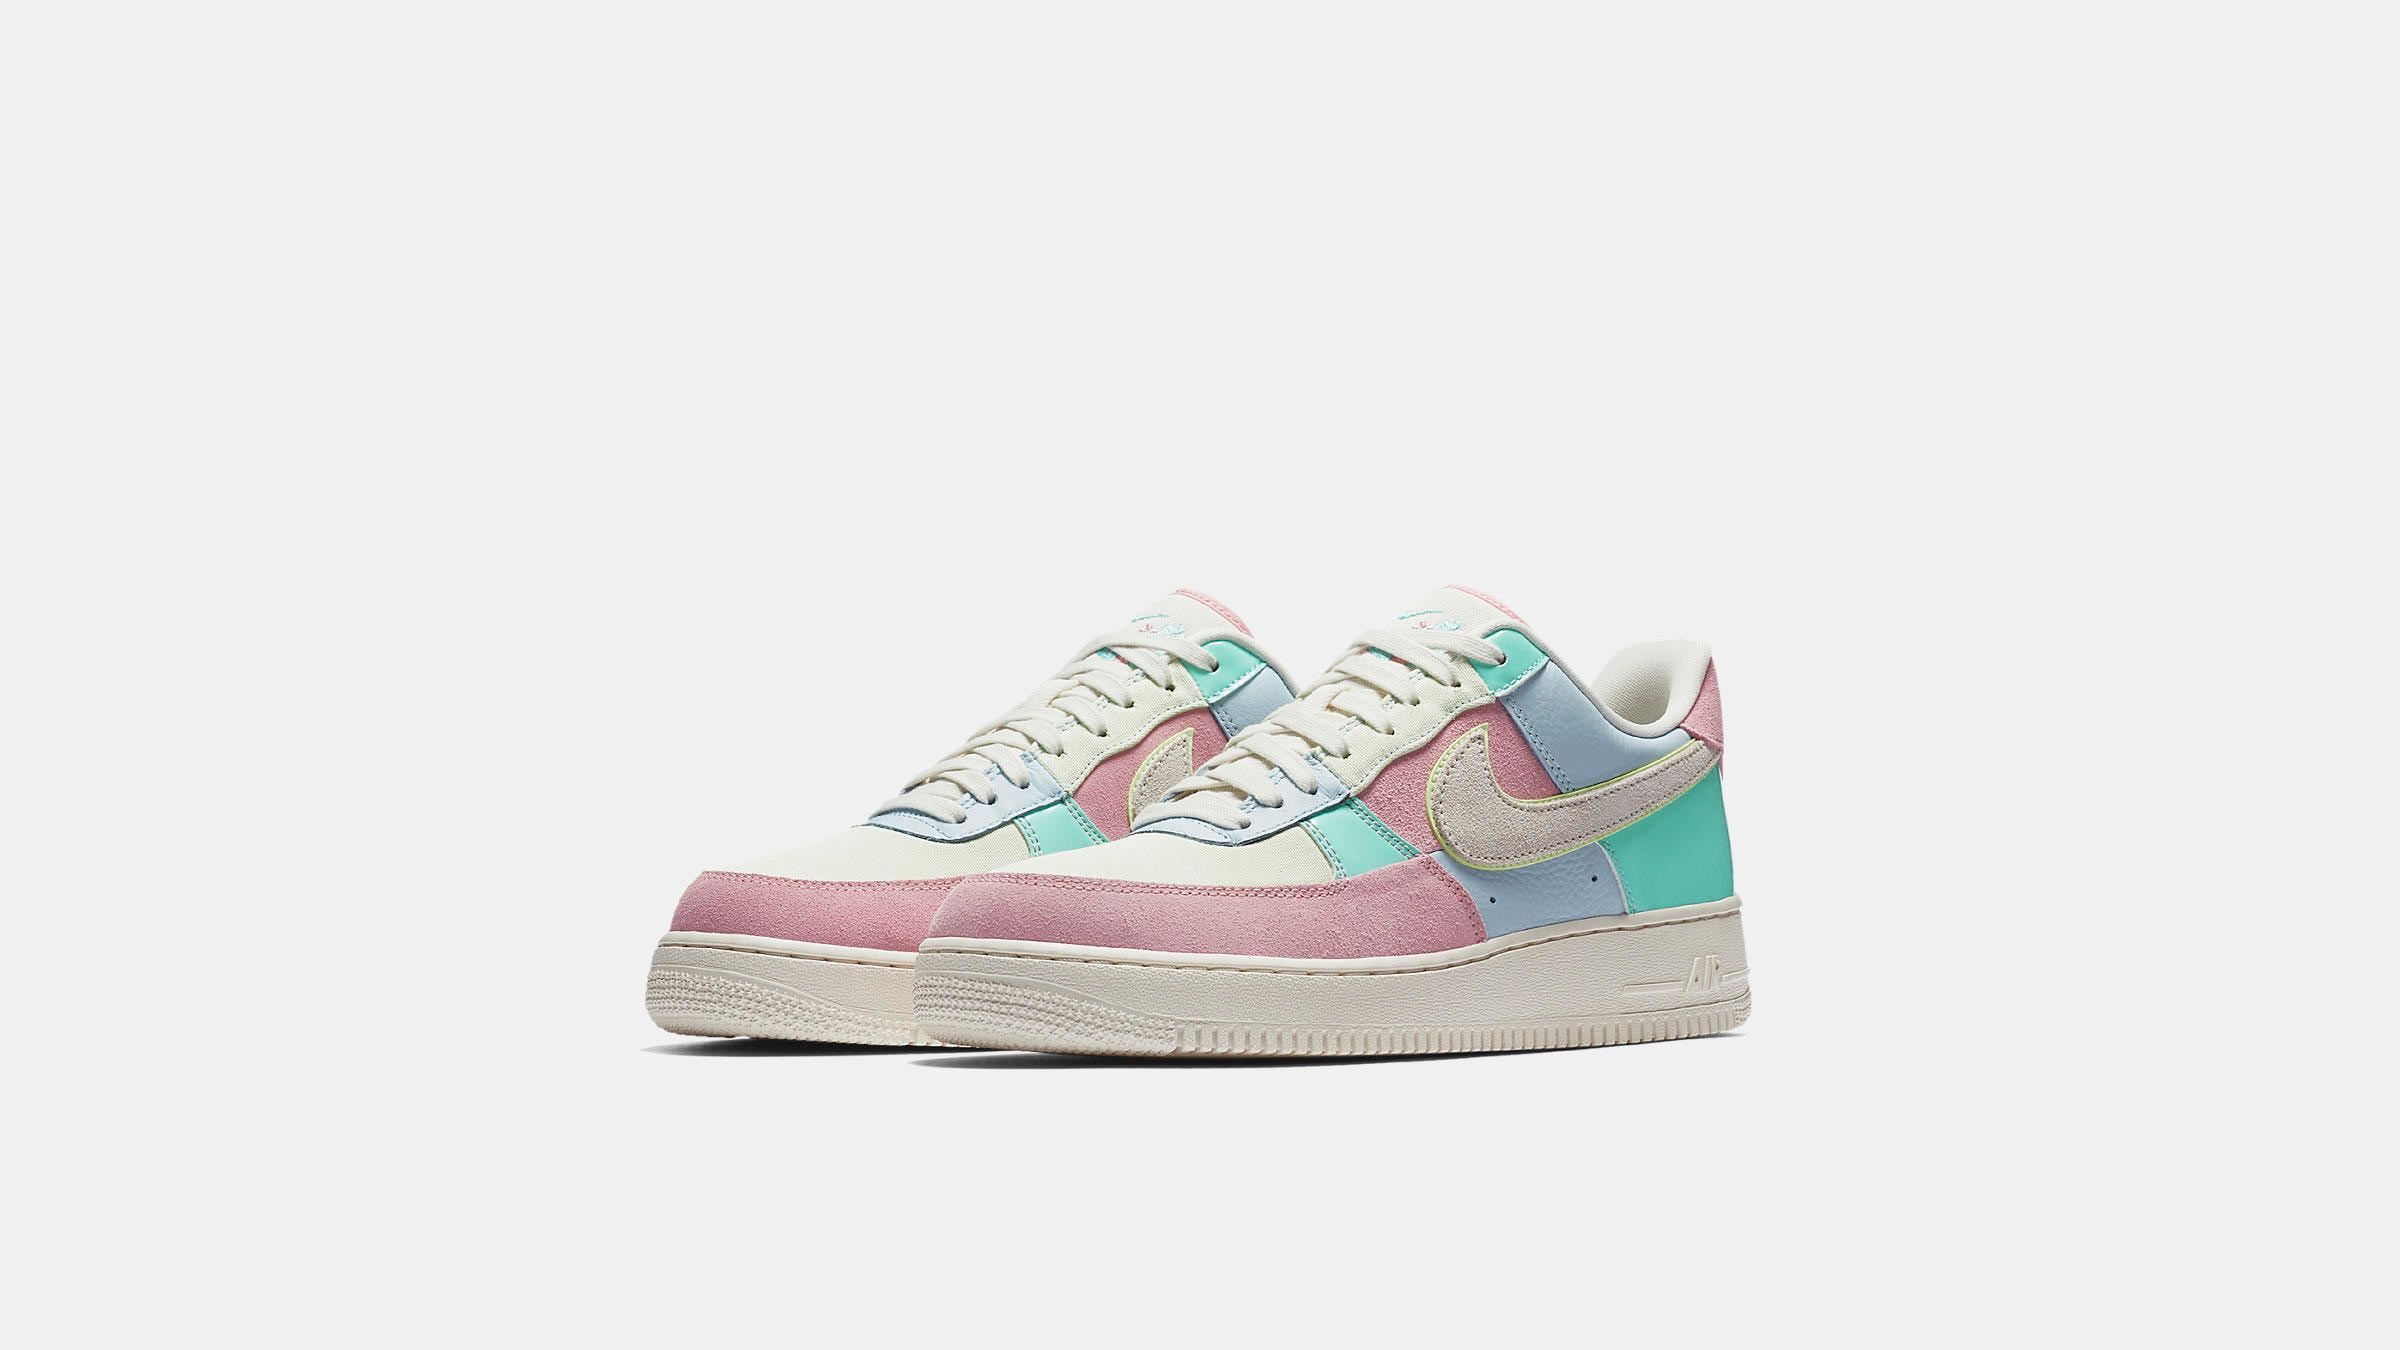 9e886409724b Nike Air Force 1 Low QS Easter AH8462-400 Available Now